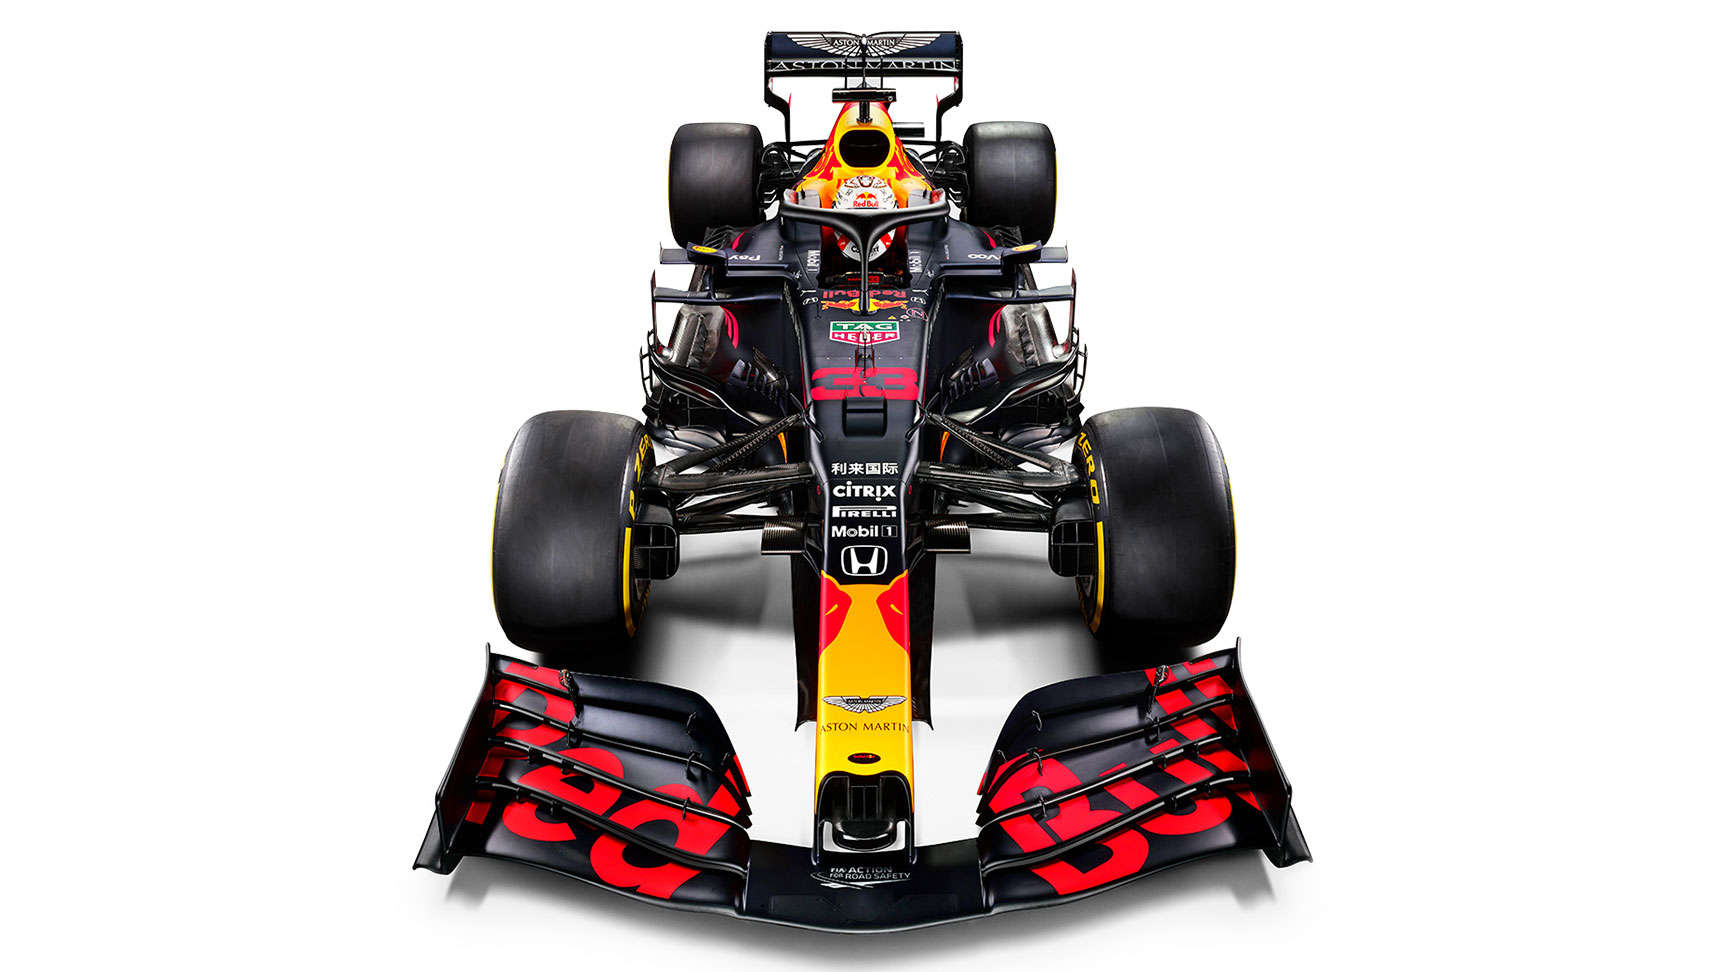 RB16 racing car